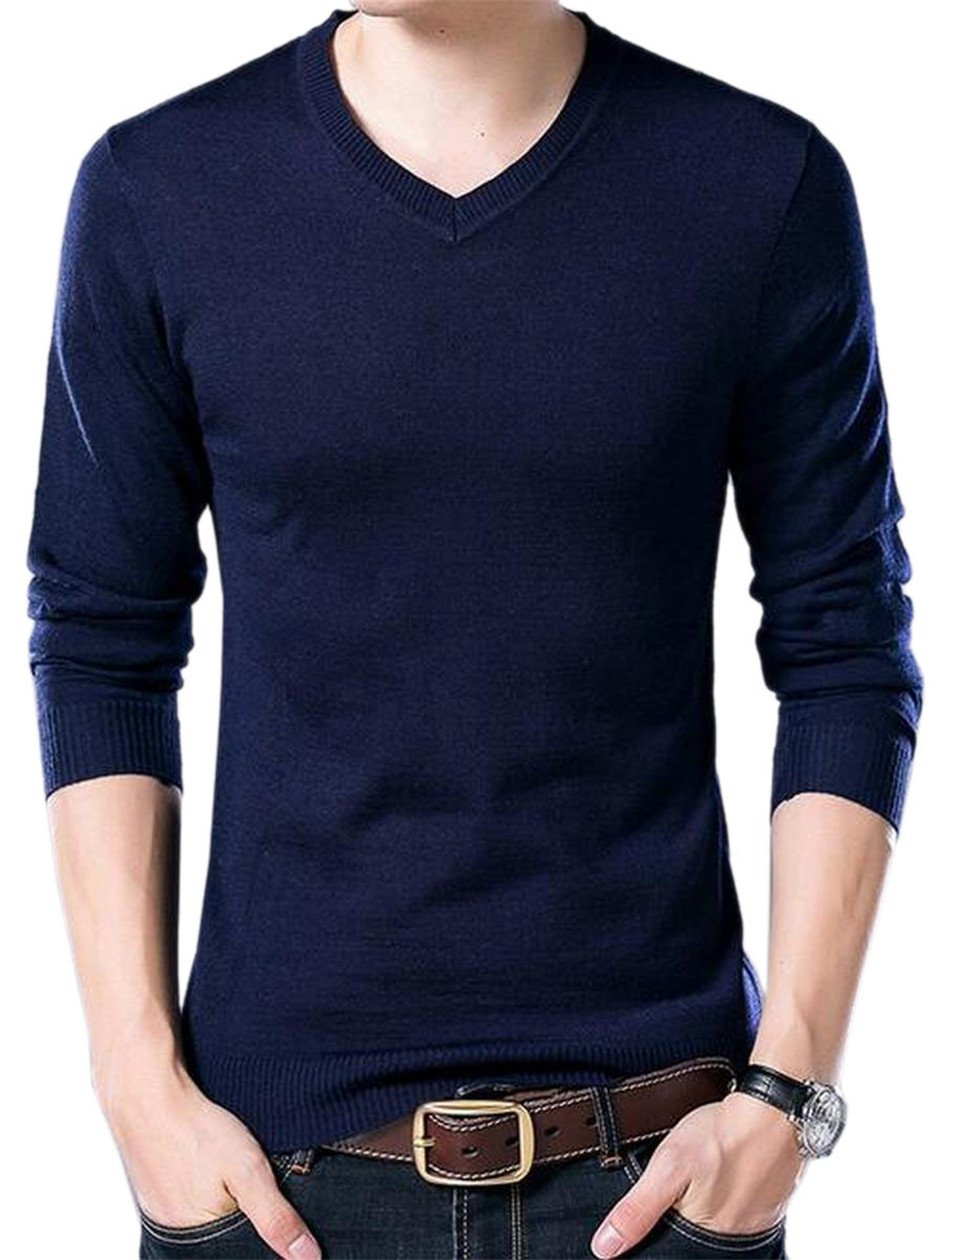 ONTBYB Mens Knit Leisure V-Neck Thin Pullover Thermal Winter Sweaters 1 XXS